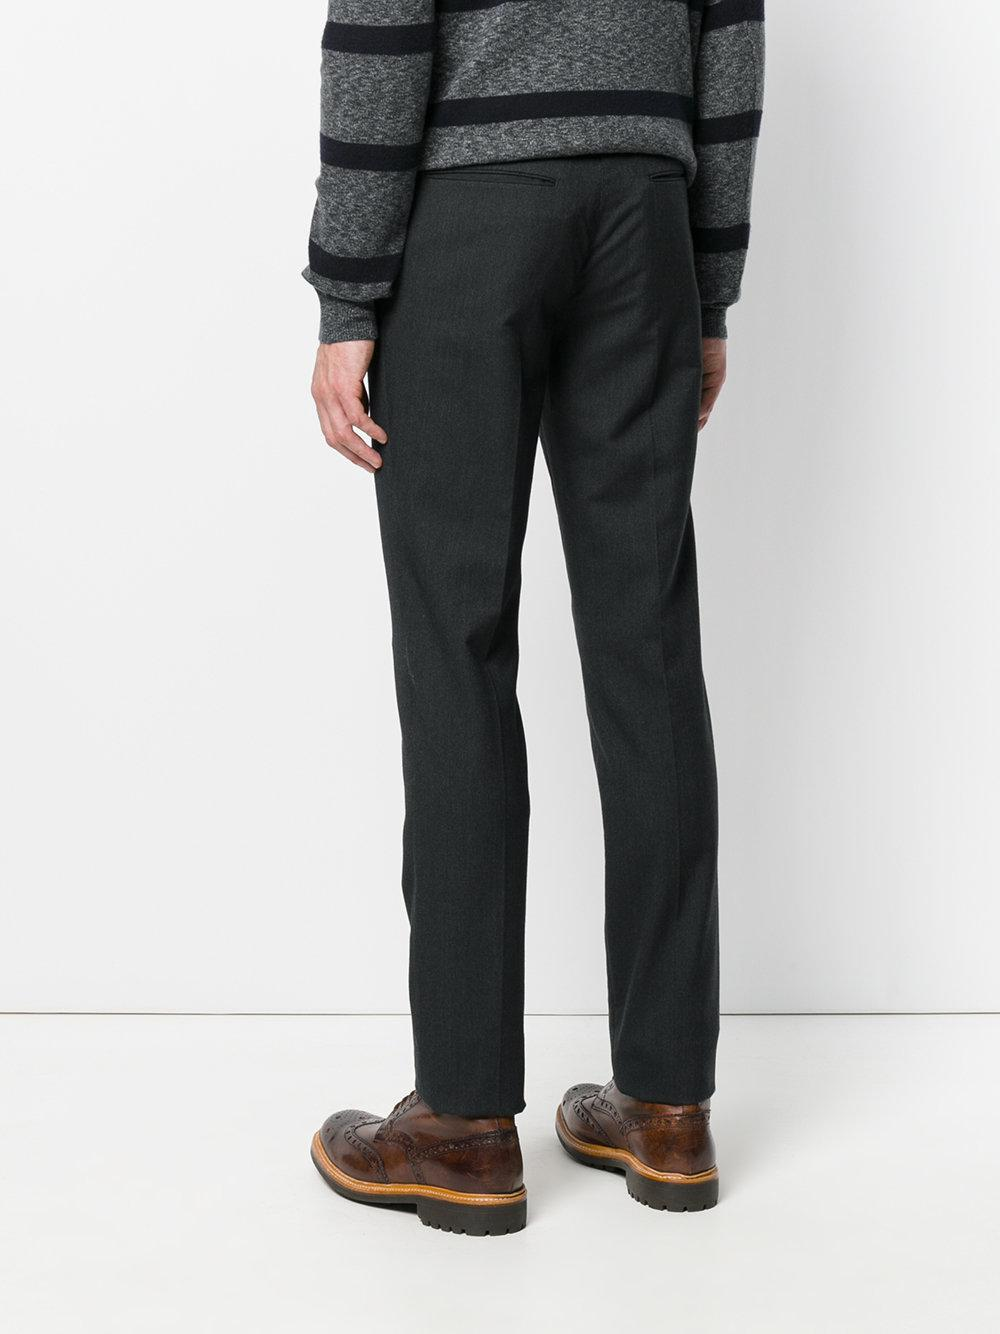 Incotex Cotton Slim Fit Tailored Trousers in Grey (Grey) for Men